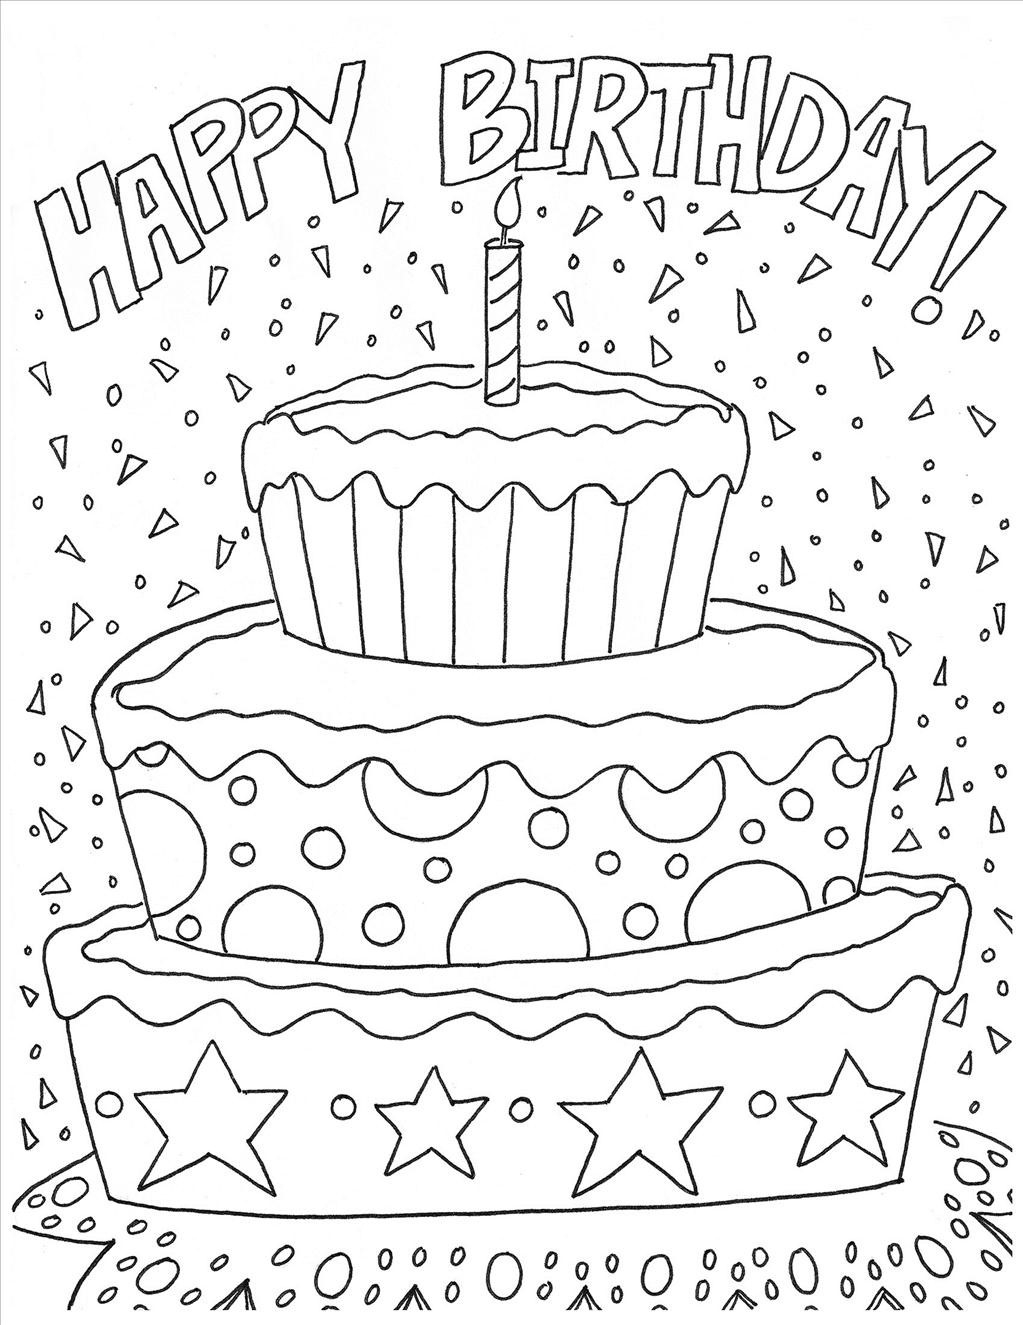 Happy Birthday Coloring Pages To Print Funny Happy Birthday Coloring Pages